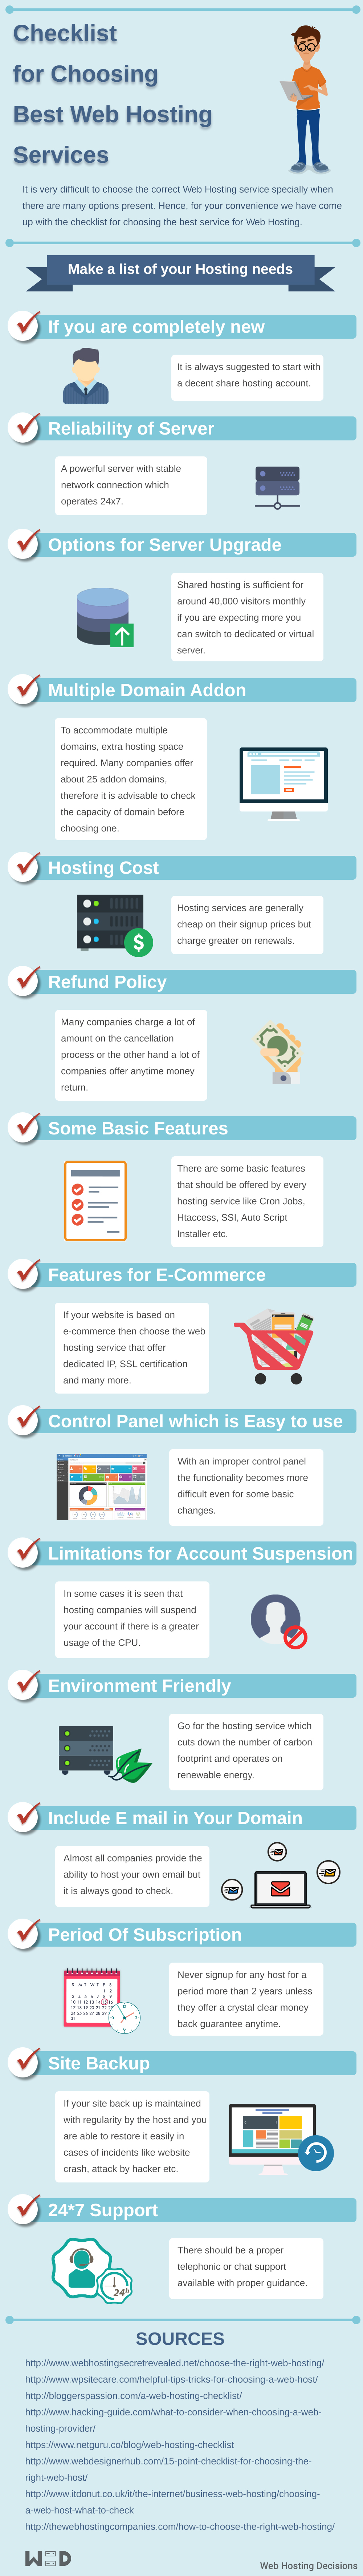 Infographic - Checklist for choosing best web hosting services